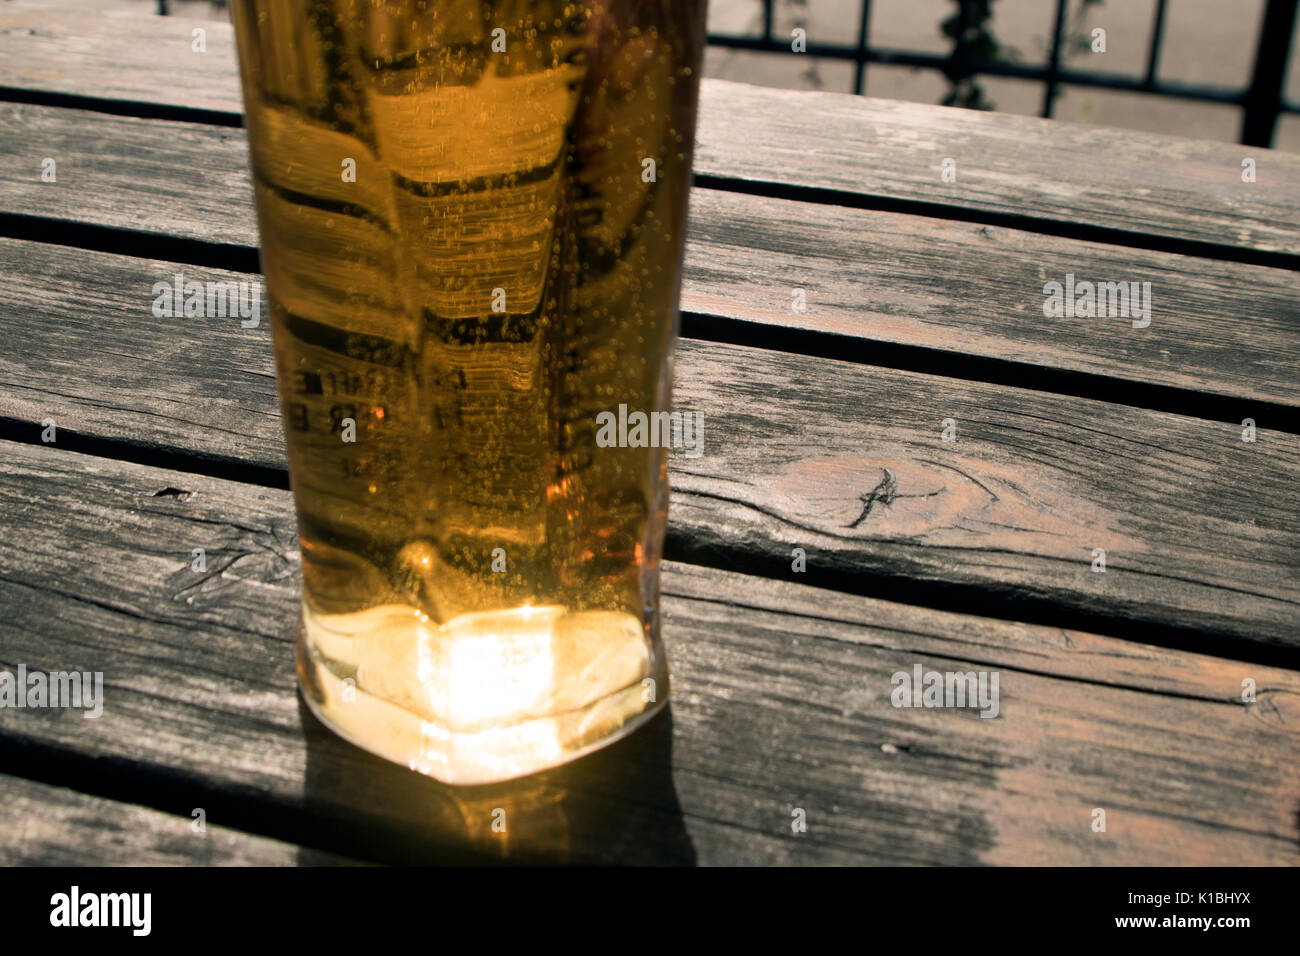 A pint of lager on a beer garden table - Stock Image